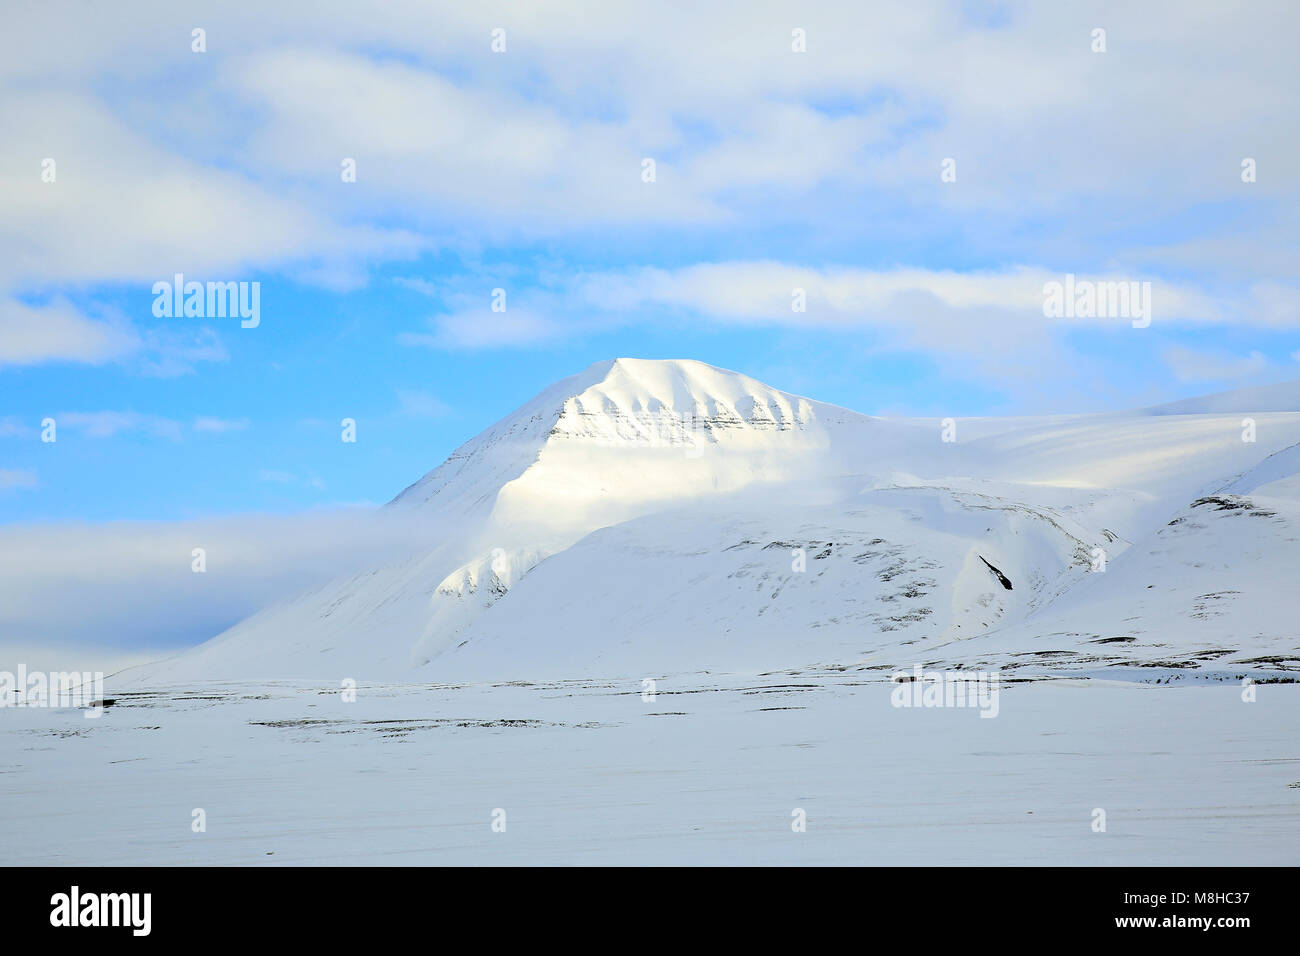 Snow-covered Mountain at Spitsbergen. Svalbard, Norway - Stock Image